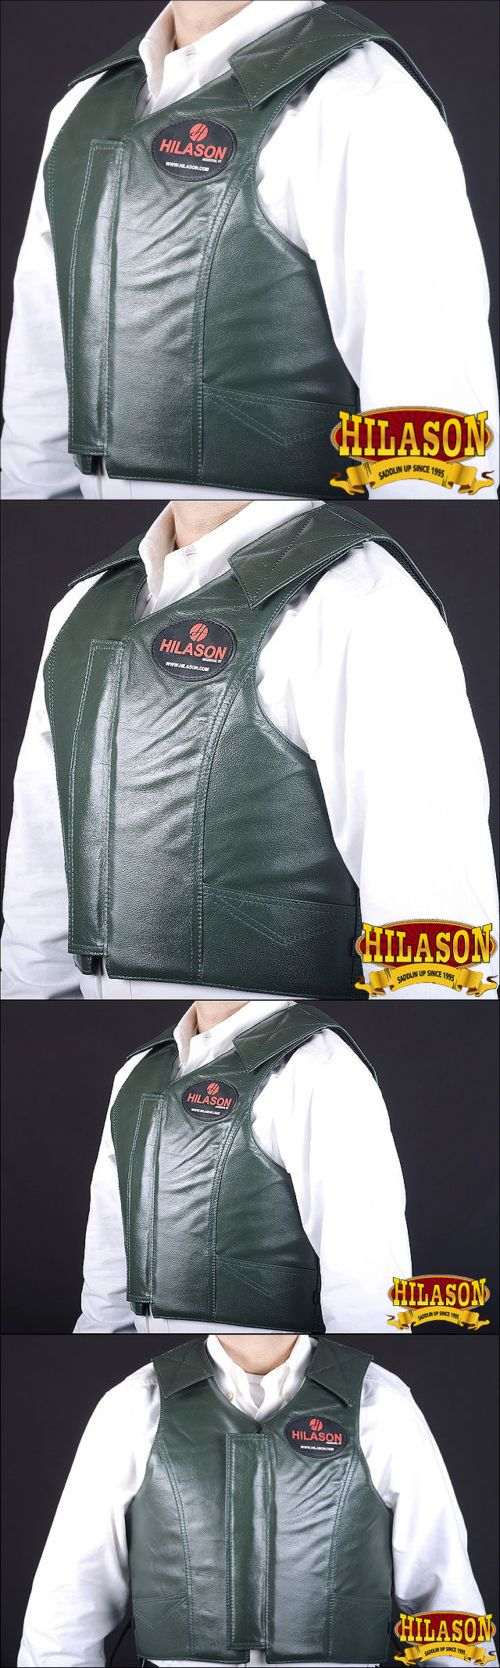 Other Protective Gear 87446: Cpv801nd Hilason Leather Bareback Pro Rodeo Horse Riding Protective Vest - Sml -> BUY IT NOW ONLY: $149.99 on eBay!